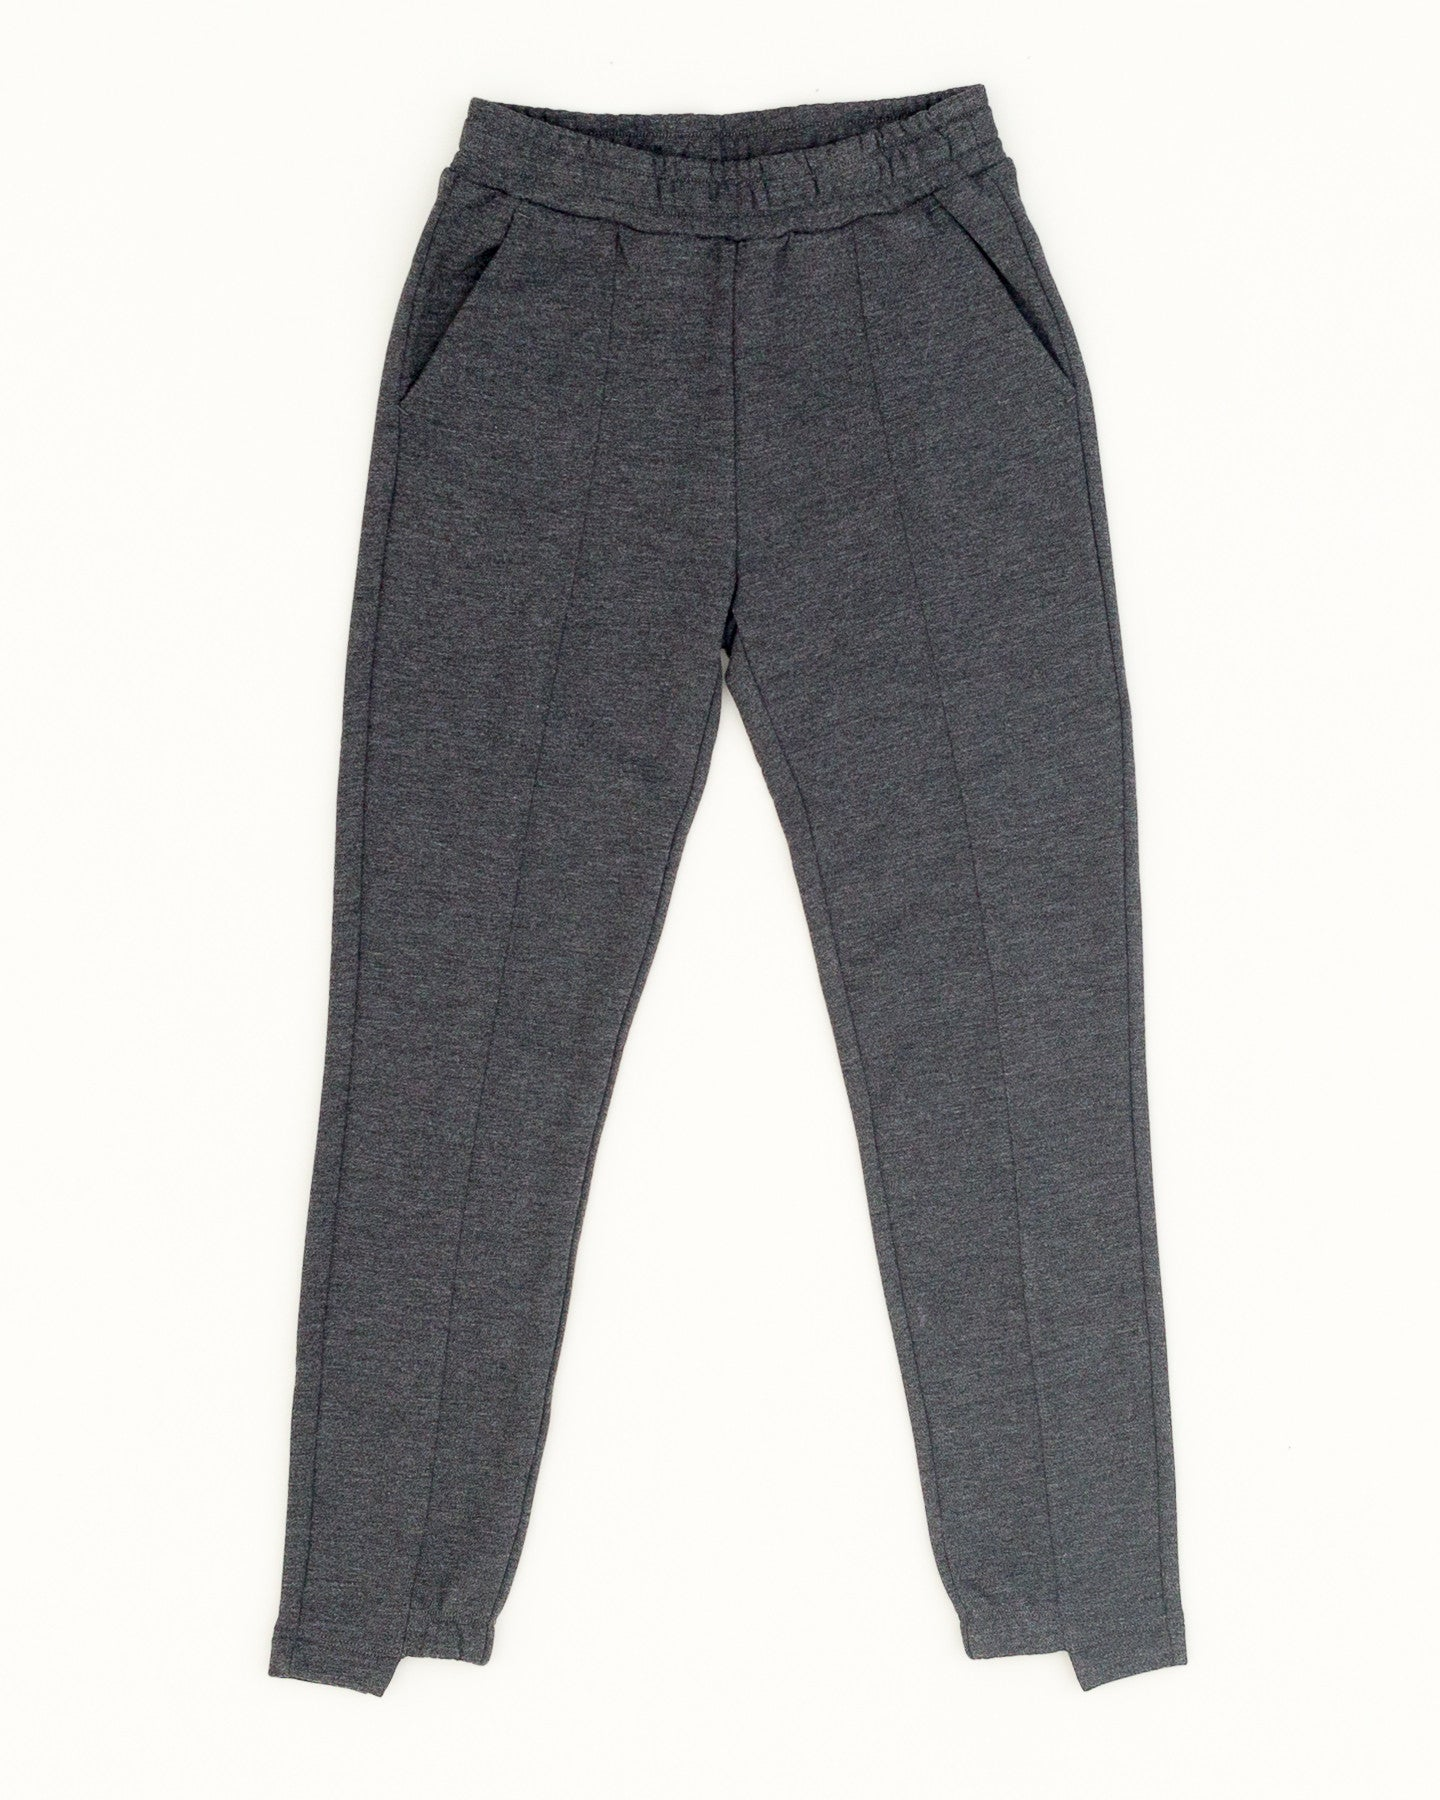 Matilda pants - grey melange